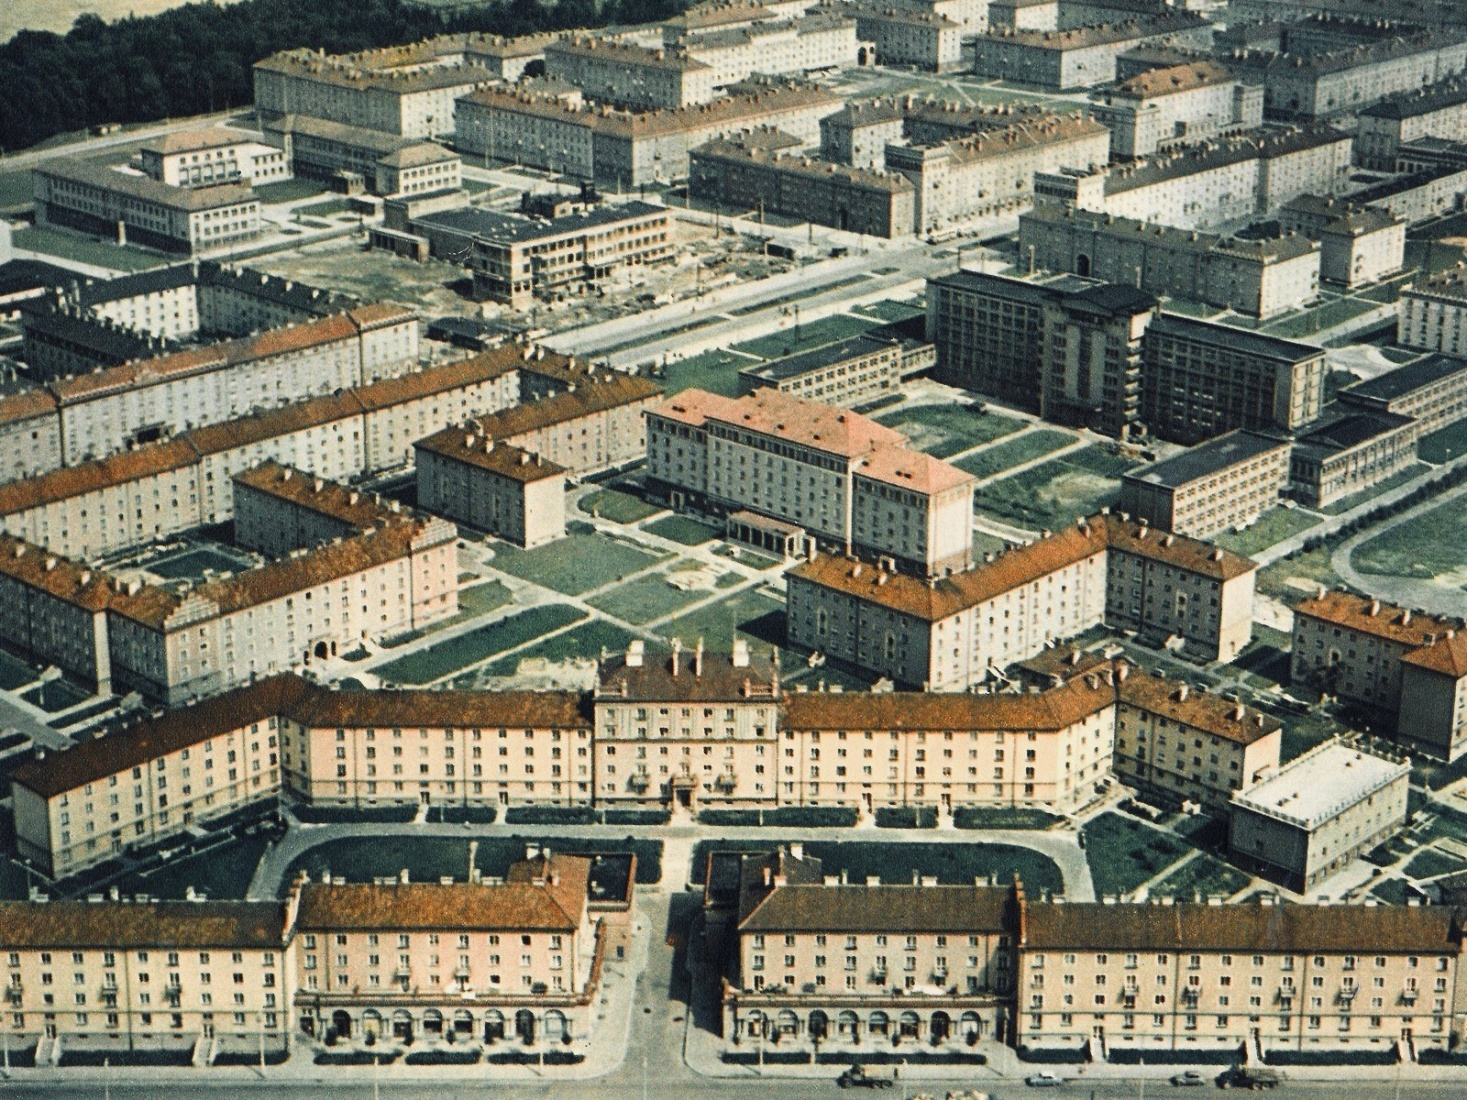 An aerial view in the Czech-Silesian mining city of Havířov, Czech Republic, showing blocks of worker housing built between the 1950s and 1970s. Photo credit: iDNES.cz